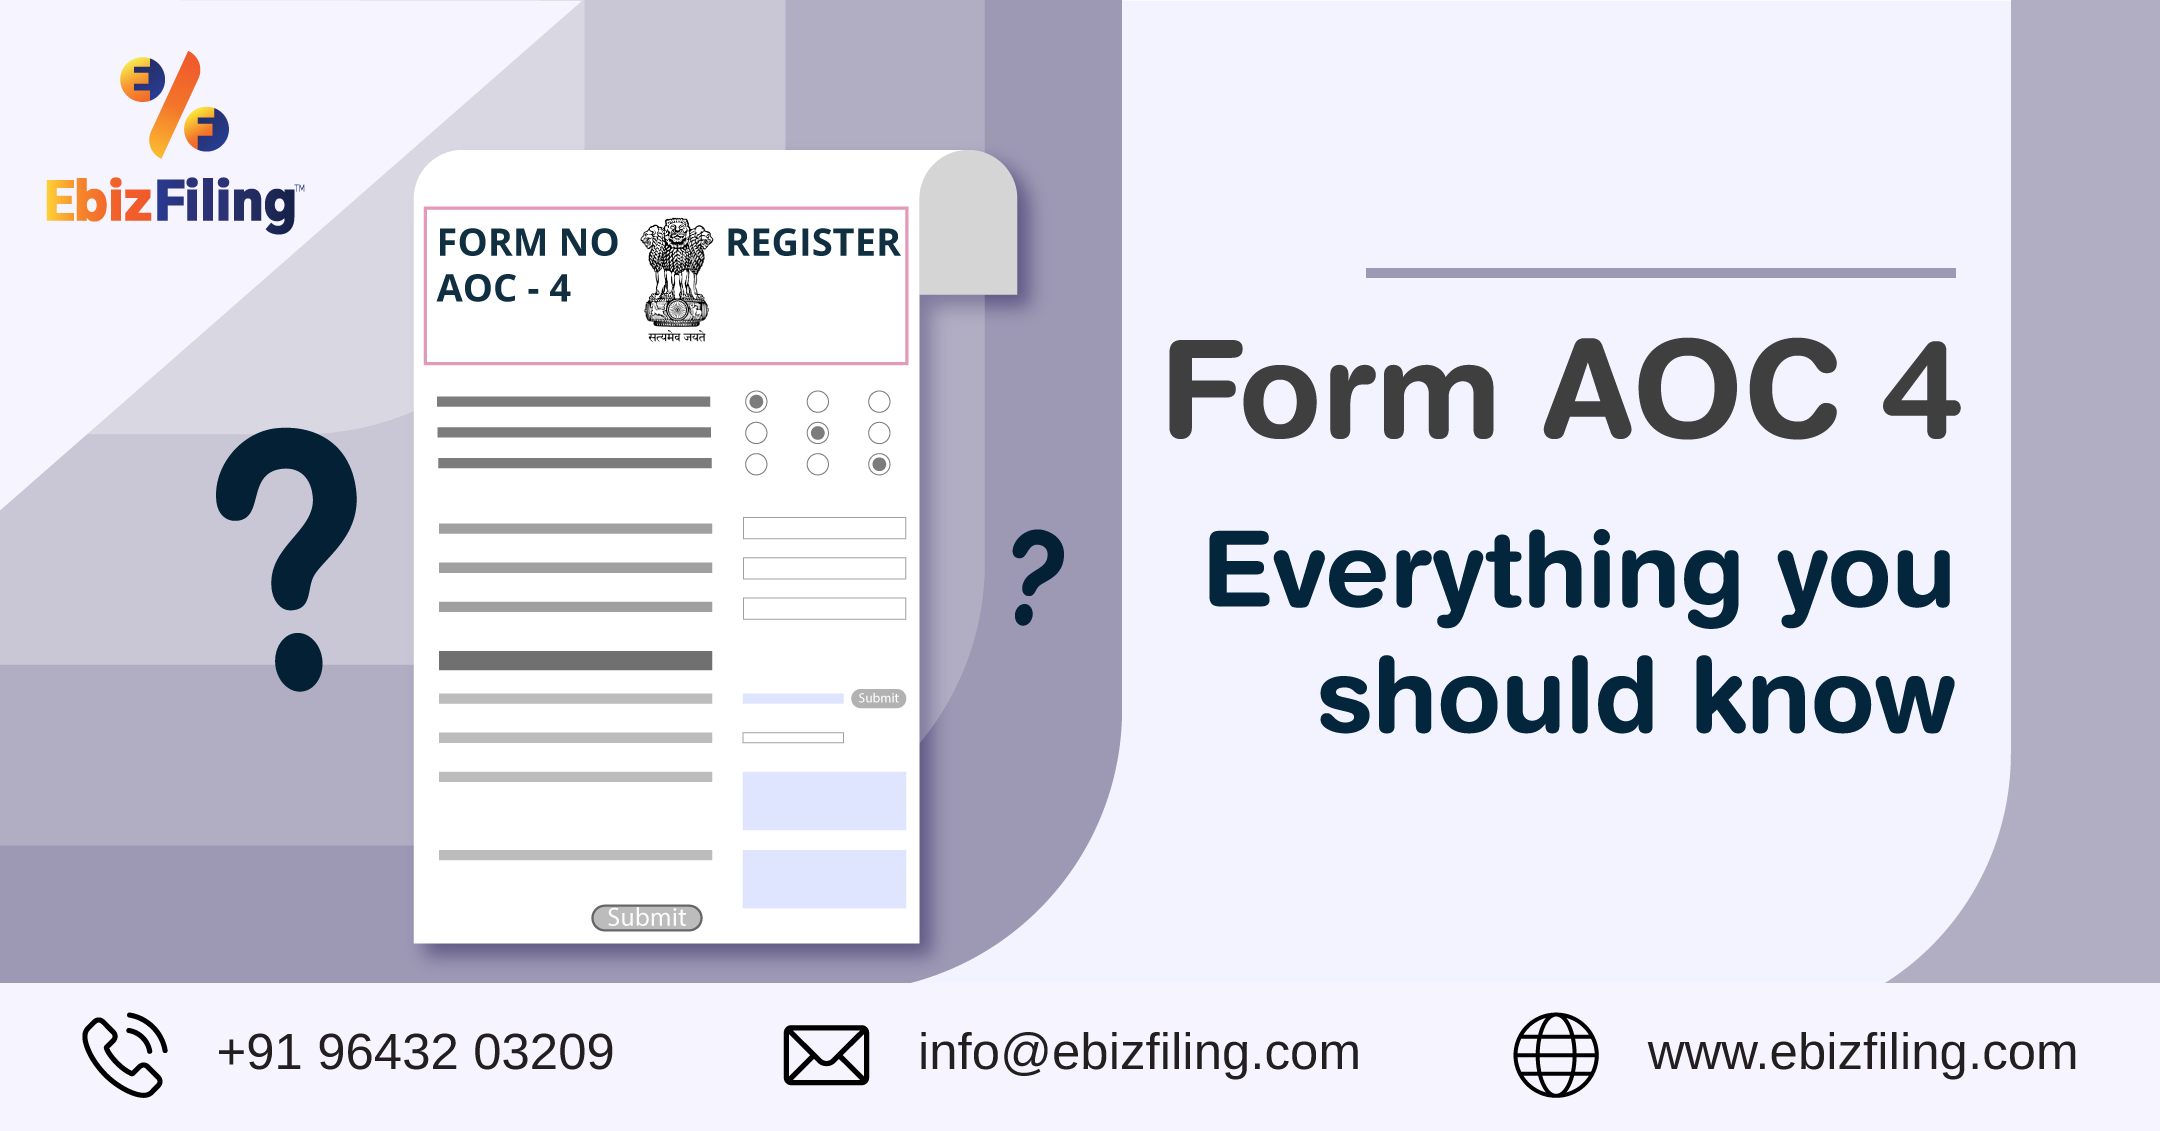 Form AOC 4, Due date for AOC 4, Penalty for late filing fees, additional fees for AOC4, Form AOC 4 due date